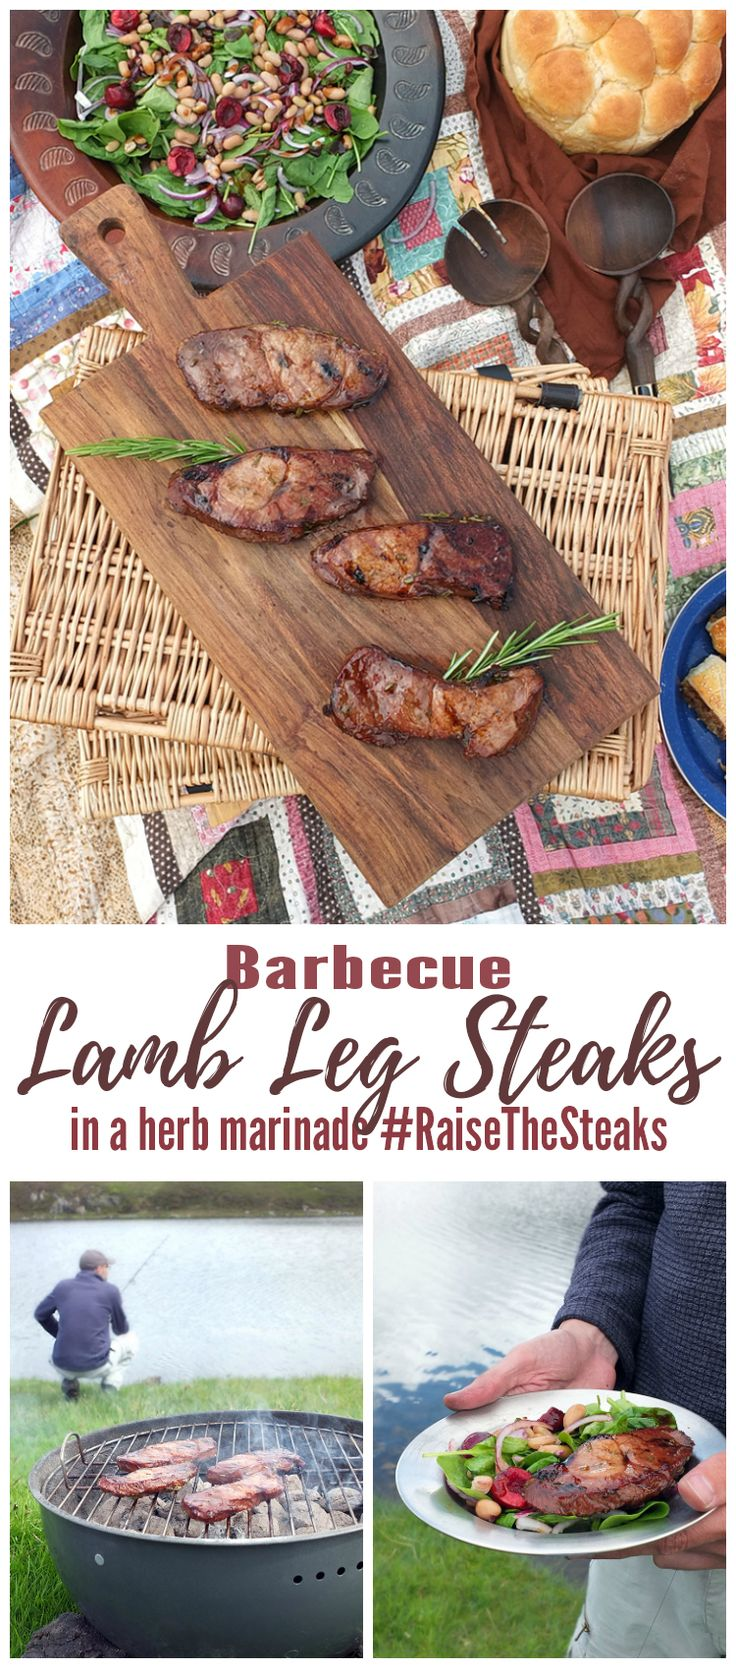 You're only five minutes' prep away from a delicious BBQ recipe with these lamb steaks!